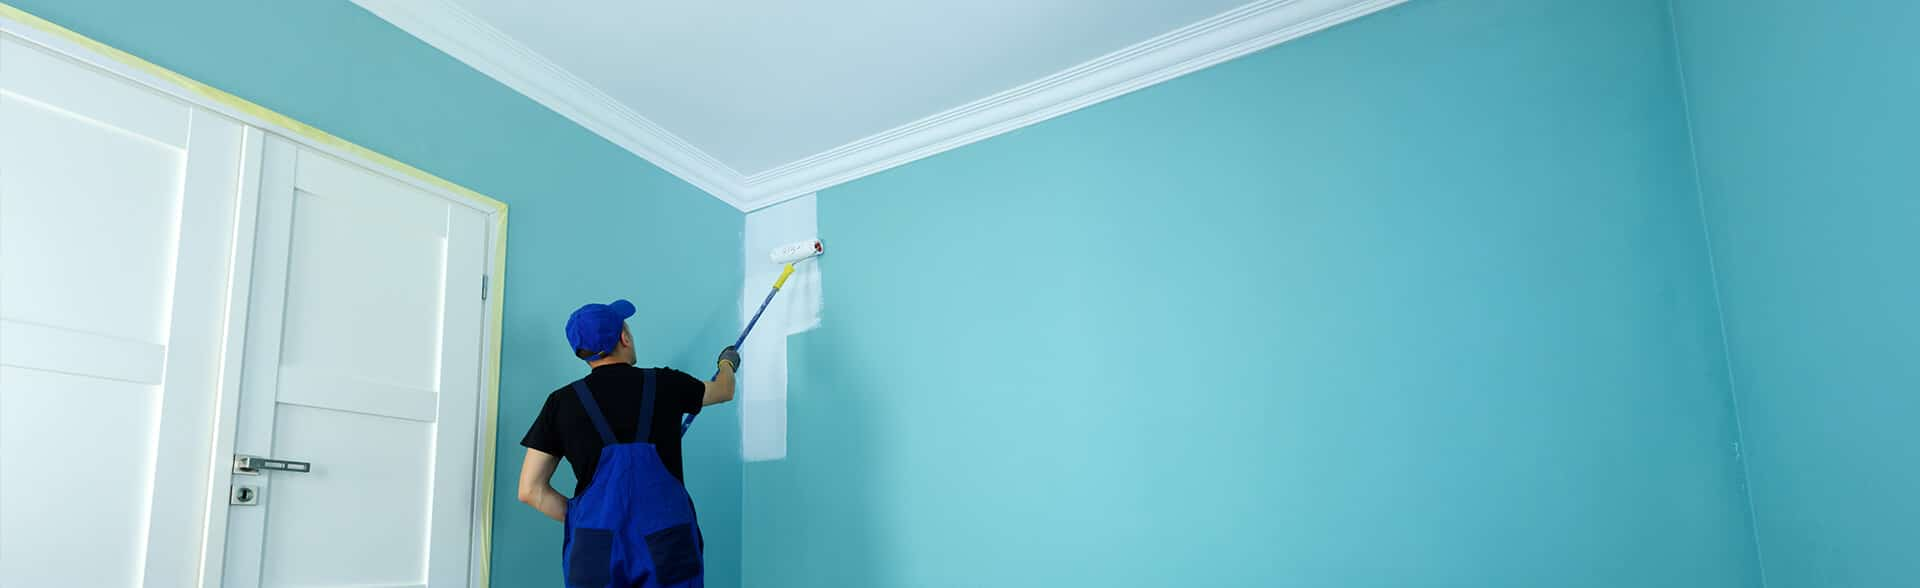 a cypress painter painting an apartment wall blue